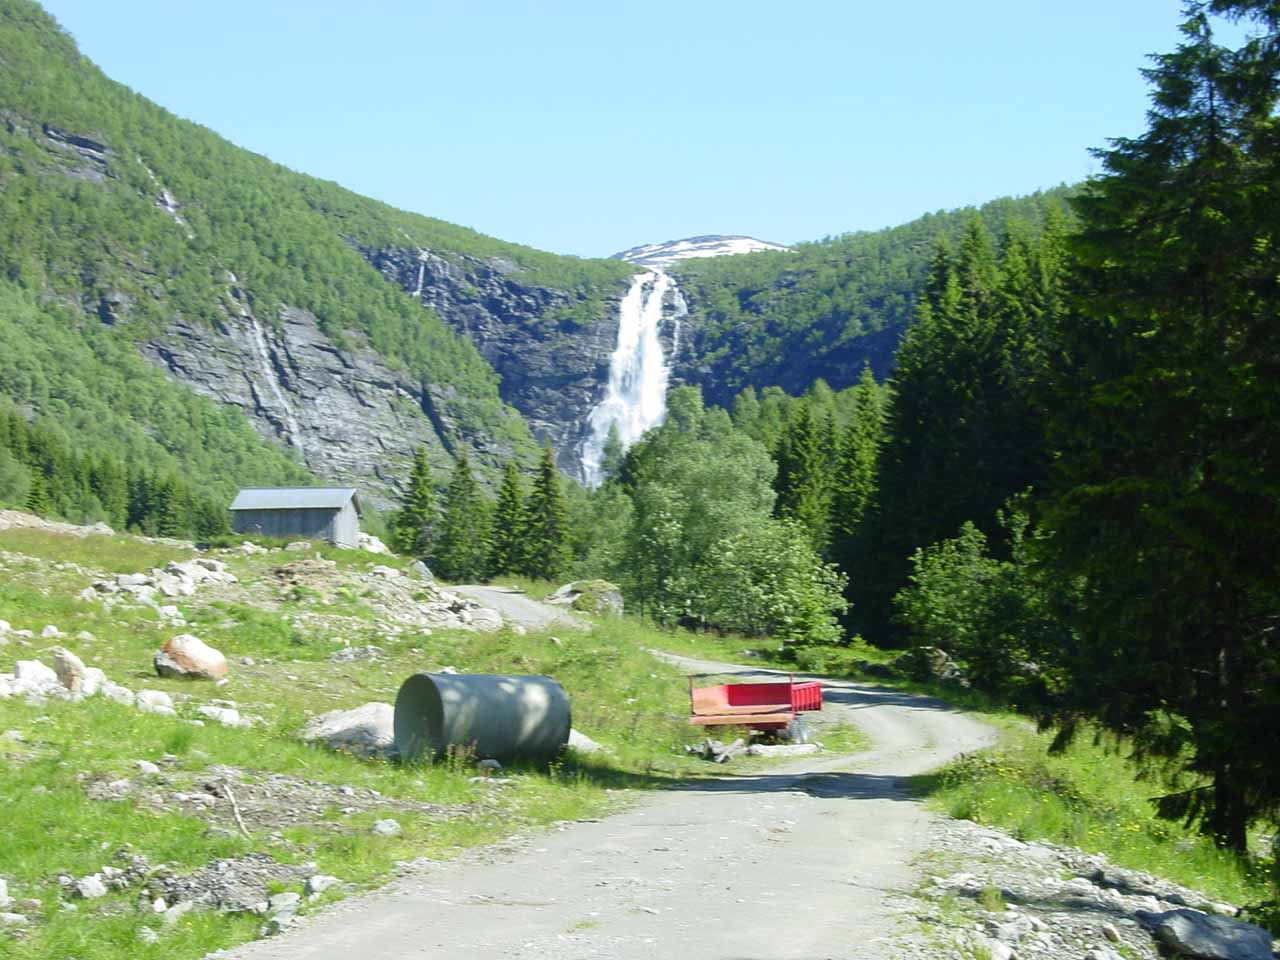 Getting closer to Sanddalsfossen as well as some of the buildings (for hydro, I suspect) up ahead